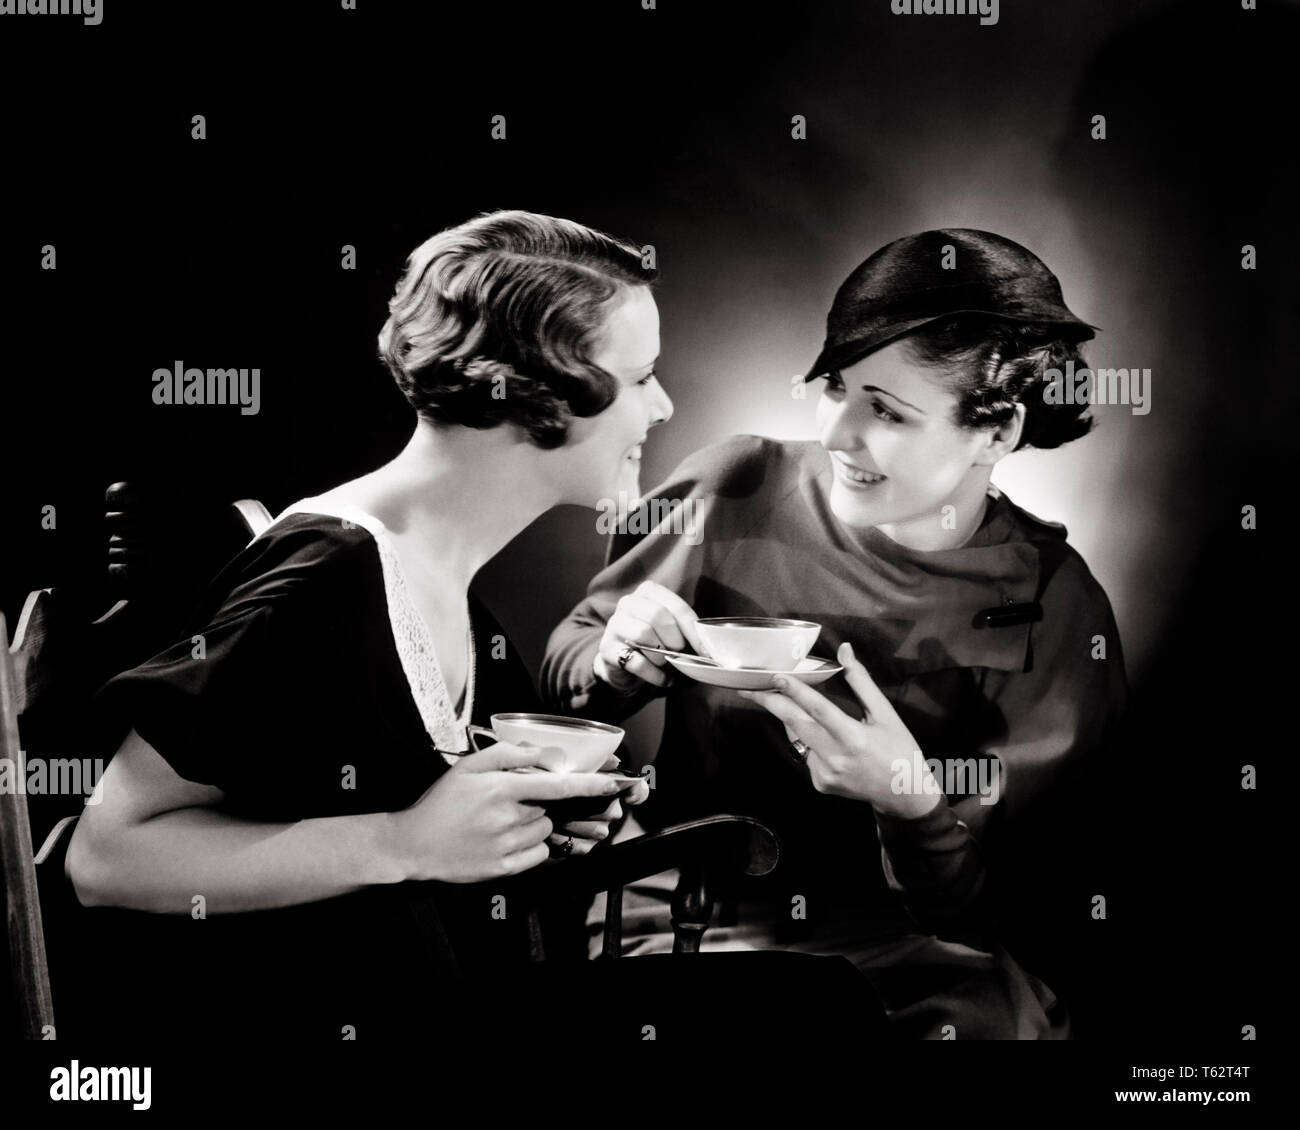 1930s TWO SMILING WOMEN SITTING TOGETHER DRINKING TEA TALKING AND GOSSIPING - bx002951 CAM001 HARS SIBLINGS SISTERS GOSSIPING B&W BEVERAGE DISCUSSING CAM001 SIBLING FRIENDLY STYLISH CUP AND SAUCER TEA CUP YOUNG ADULT WOMAN BLACK AND WHITE CAUCASIAN ETHNICITY OLD FASHIONED - Stock Image